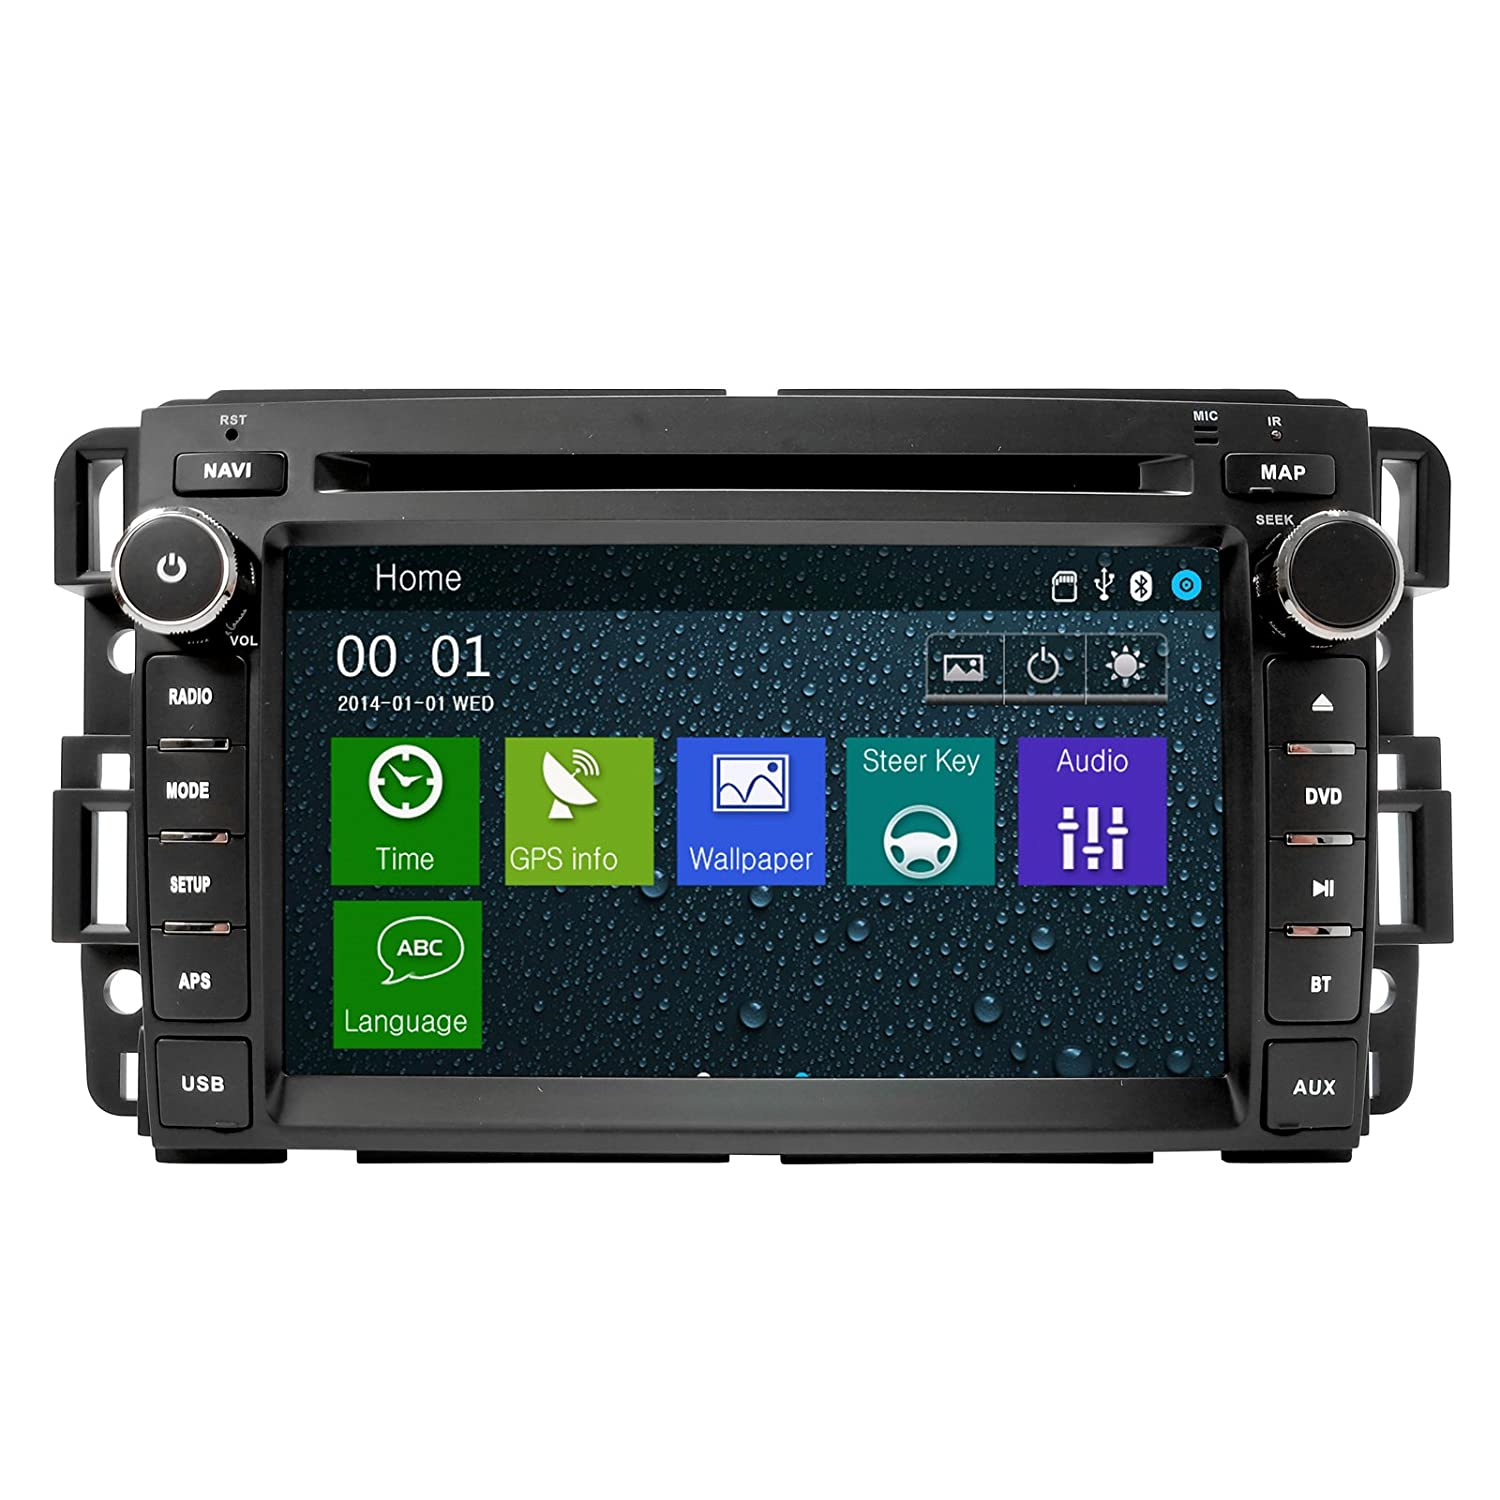 Amazon.com: Chevrolet Silverado BOSE 07-12 OEM Replacement In Dash Double  Din Touch Screen GPS Navigation Radio 2007-2010 [s60]: GPS & Navigation